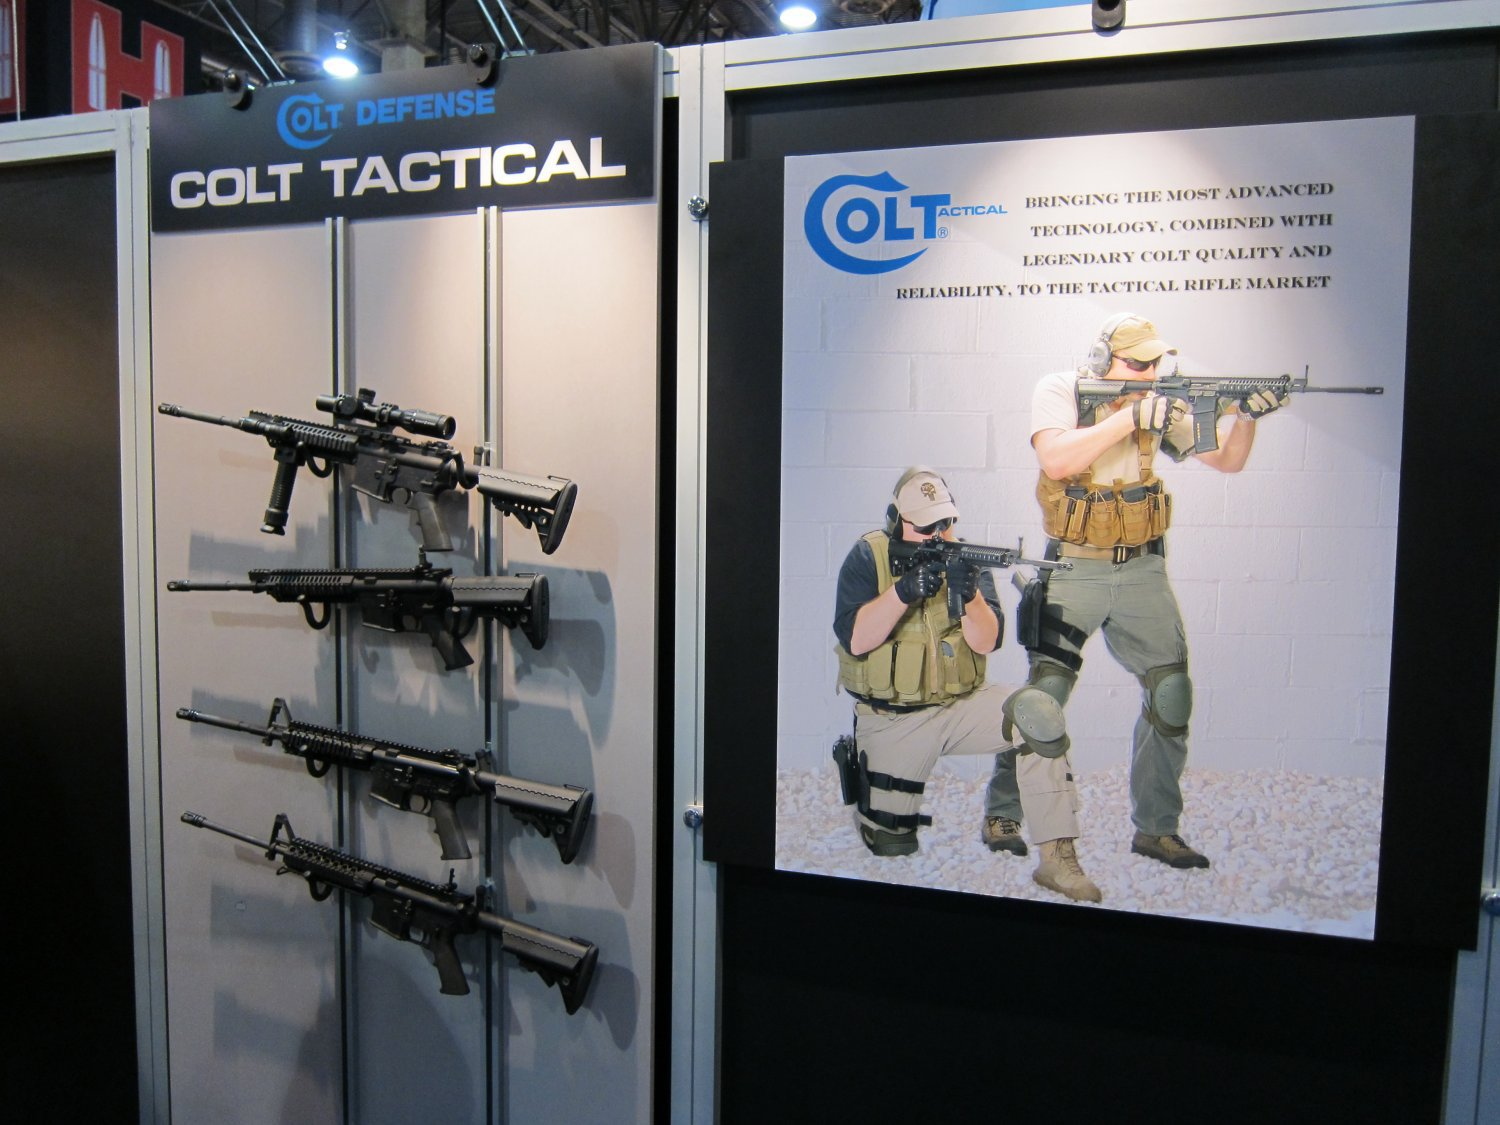 shot show 2010 colt tactical ar carbines 4 <!  :en  >Colt Defense Launches Colt Tactical Carbines/Rifles for Civilian Tactical Shooters at SHOT Show 2010: Tactical Guns Accessorized for Intensive Tactical Training<!  :  >